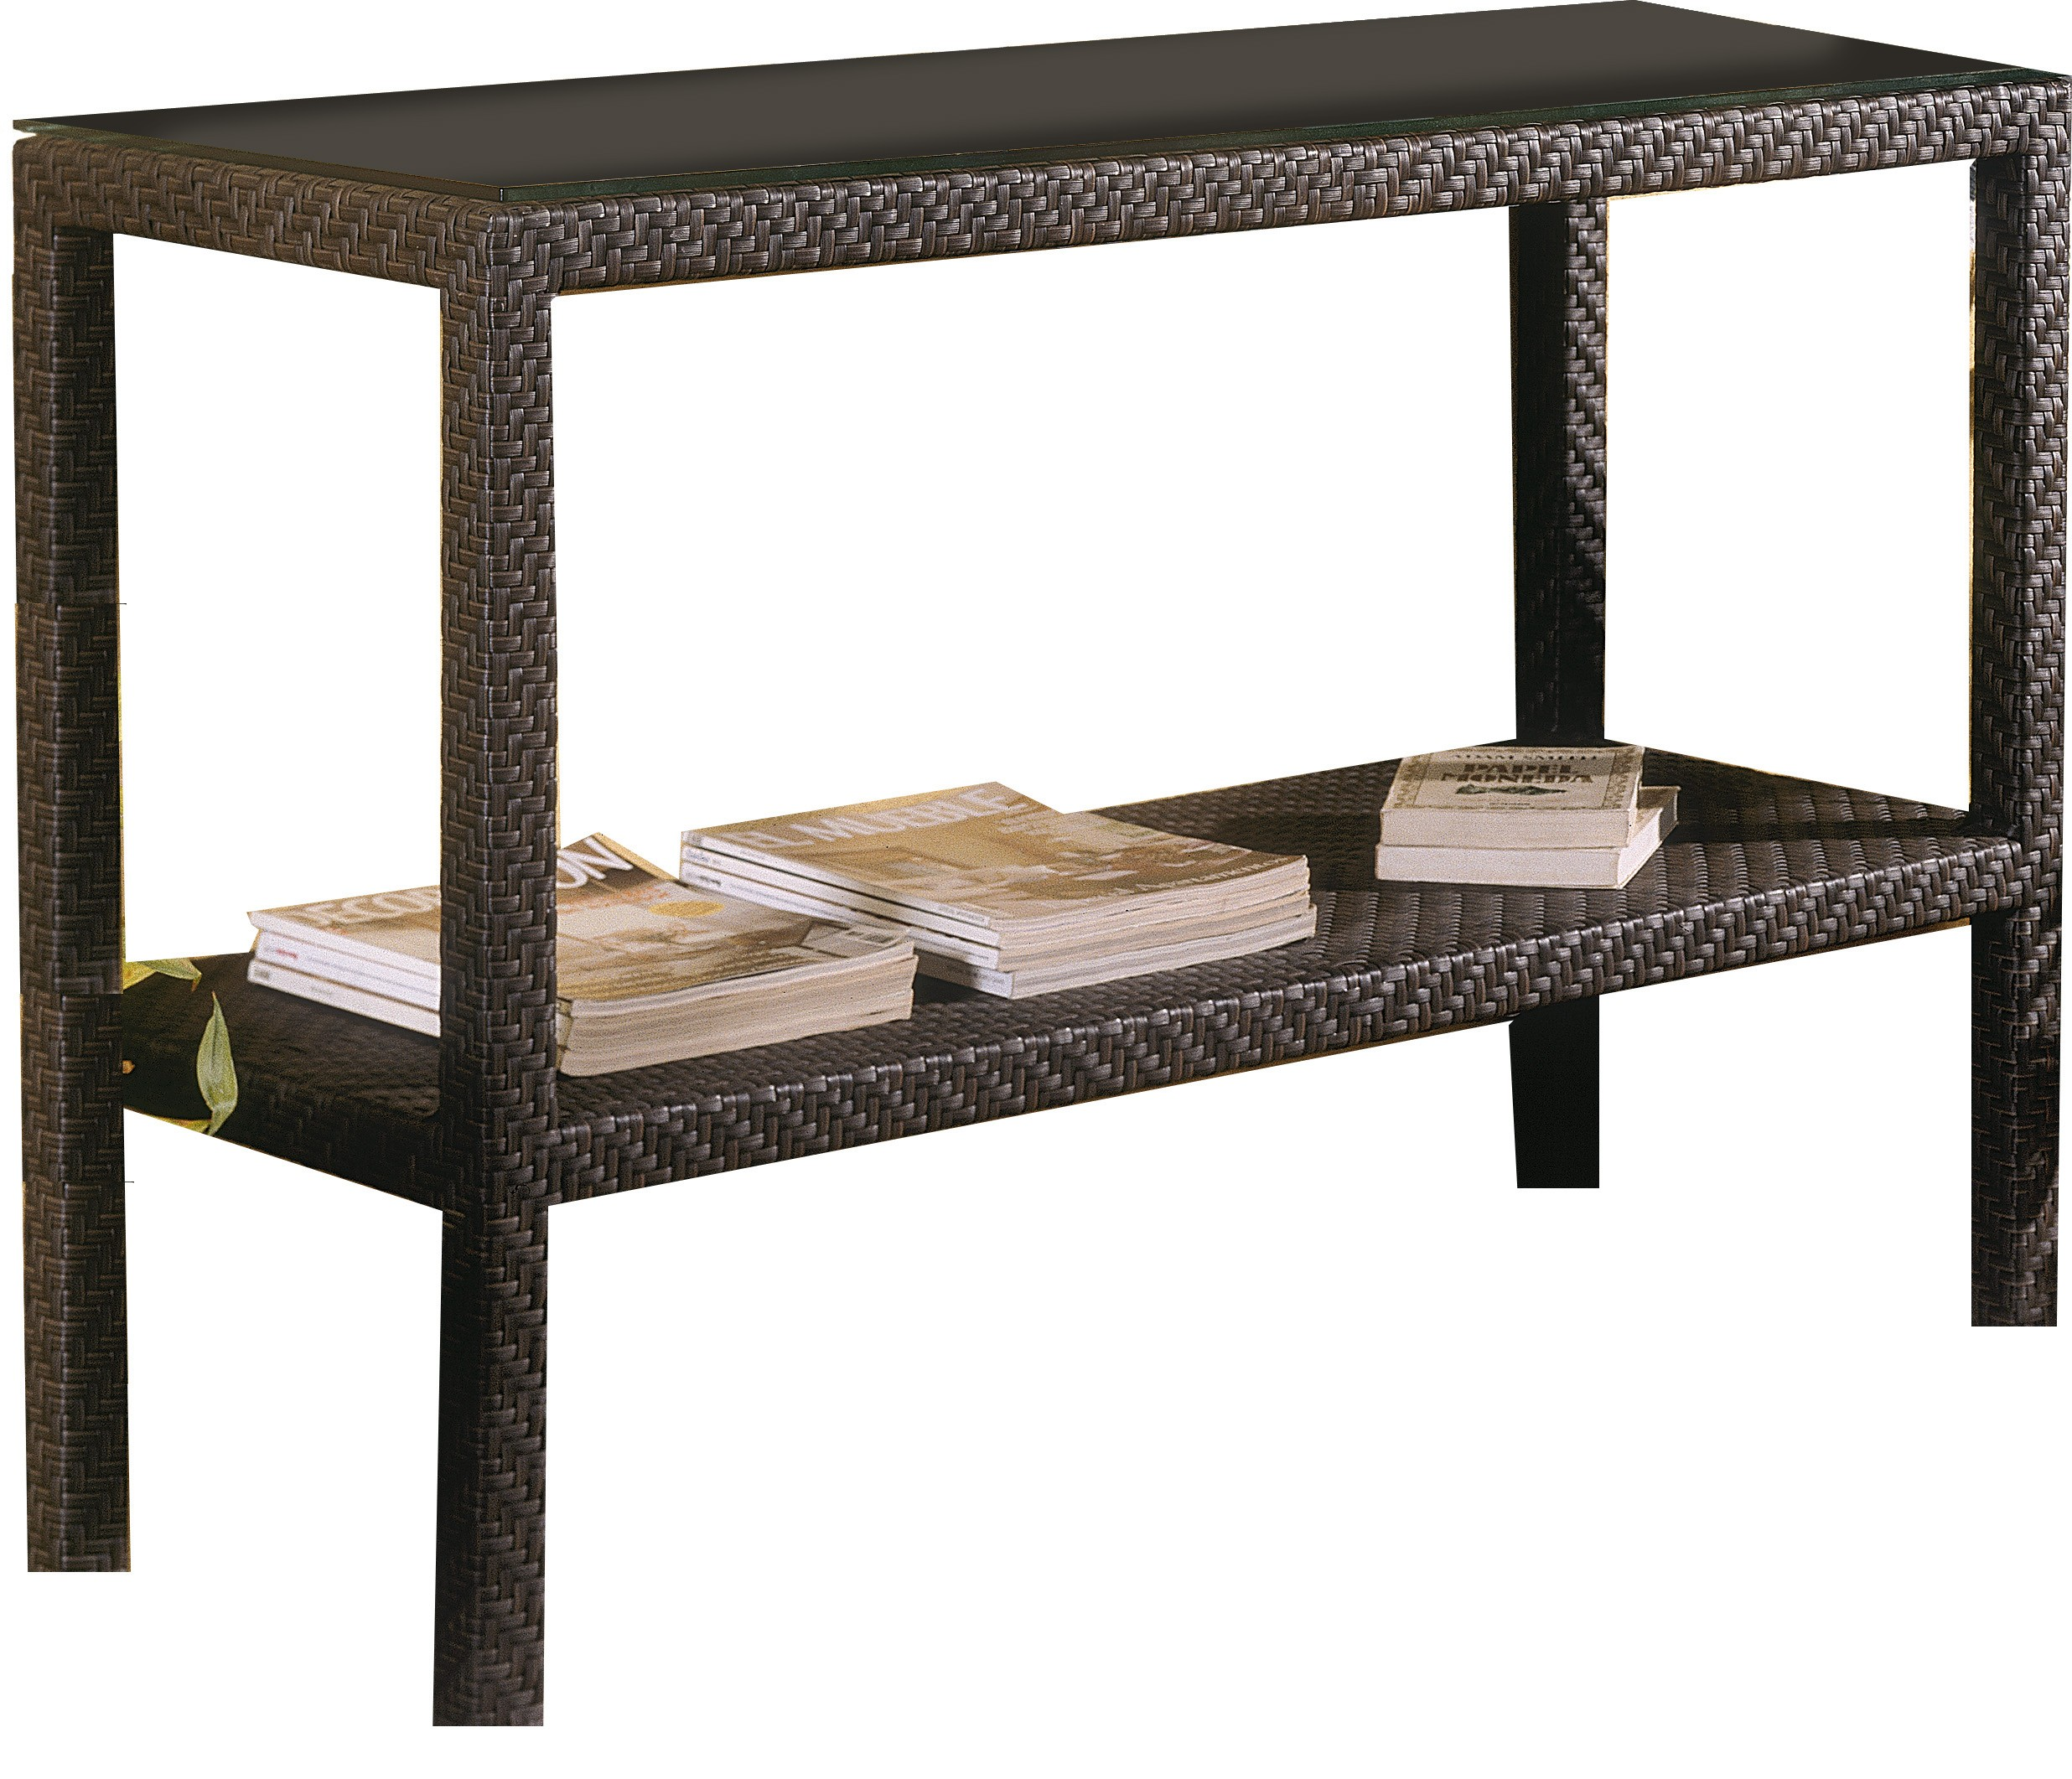 hospitality rattan wicker console table narrow outdoor sideboard all weather storage wide bedside cabinets acrylic top coffee wine cabinet rectangular nesting tables gold bedroom